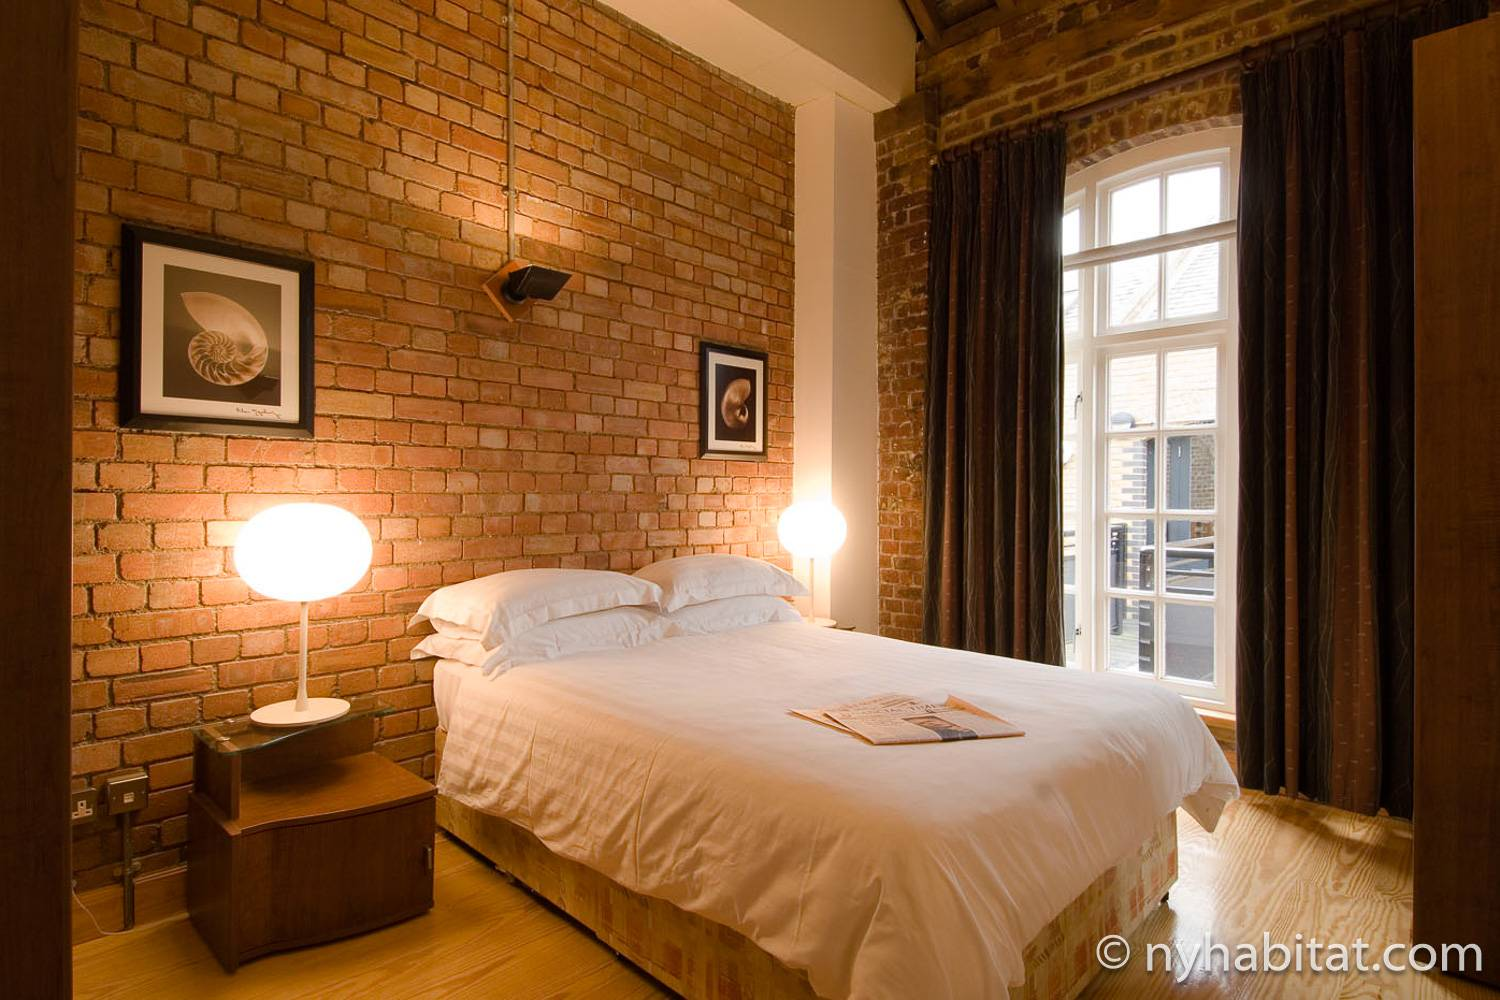 Image of bedroom in LN-692 with exposed brick walls and double bed.